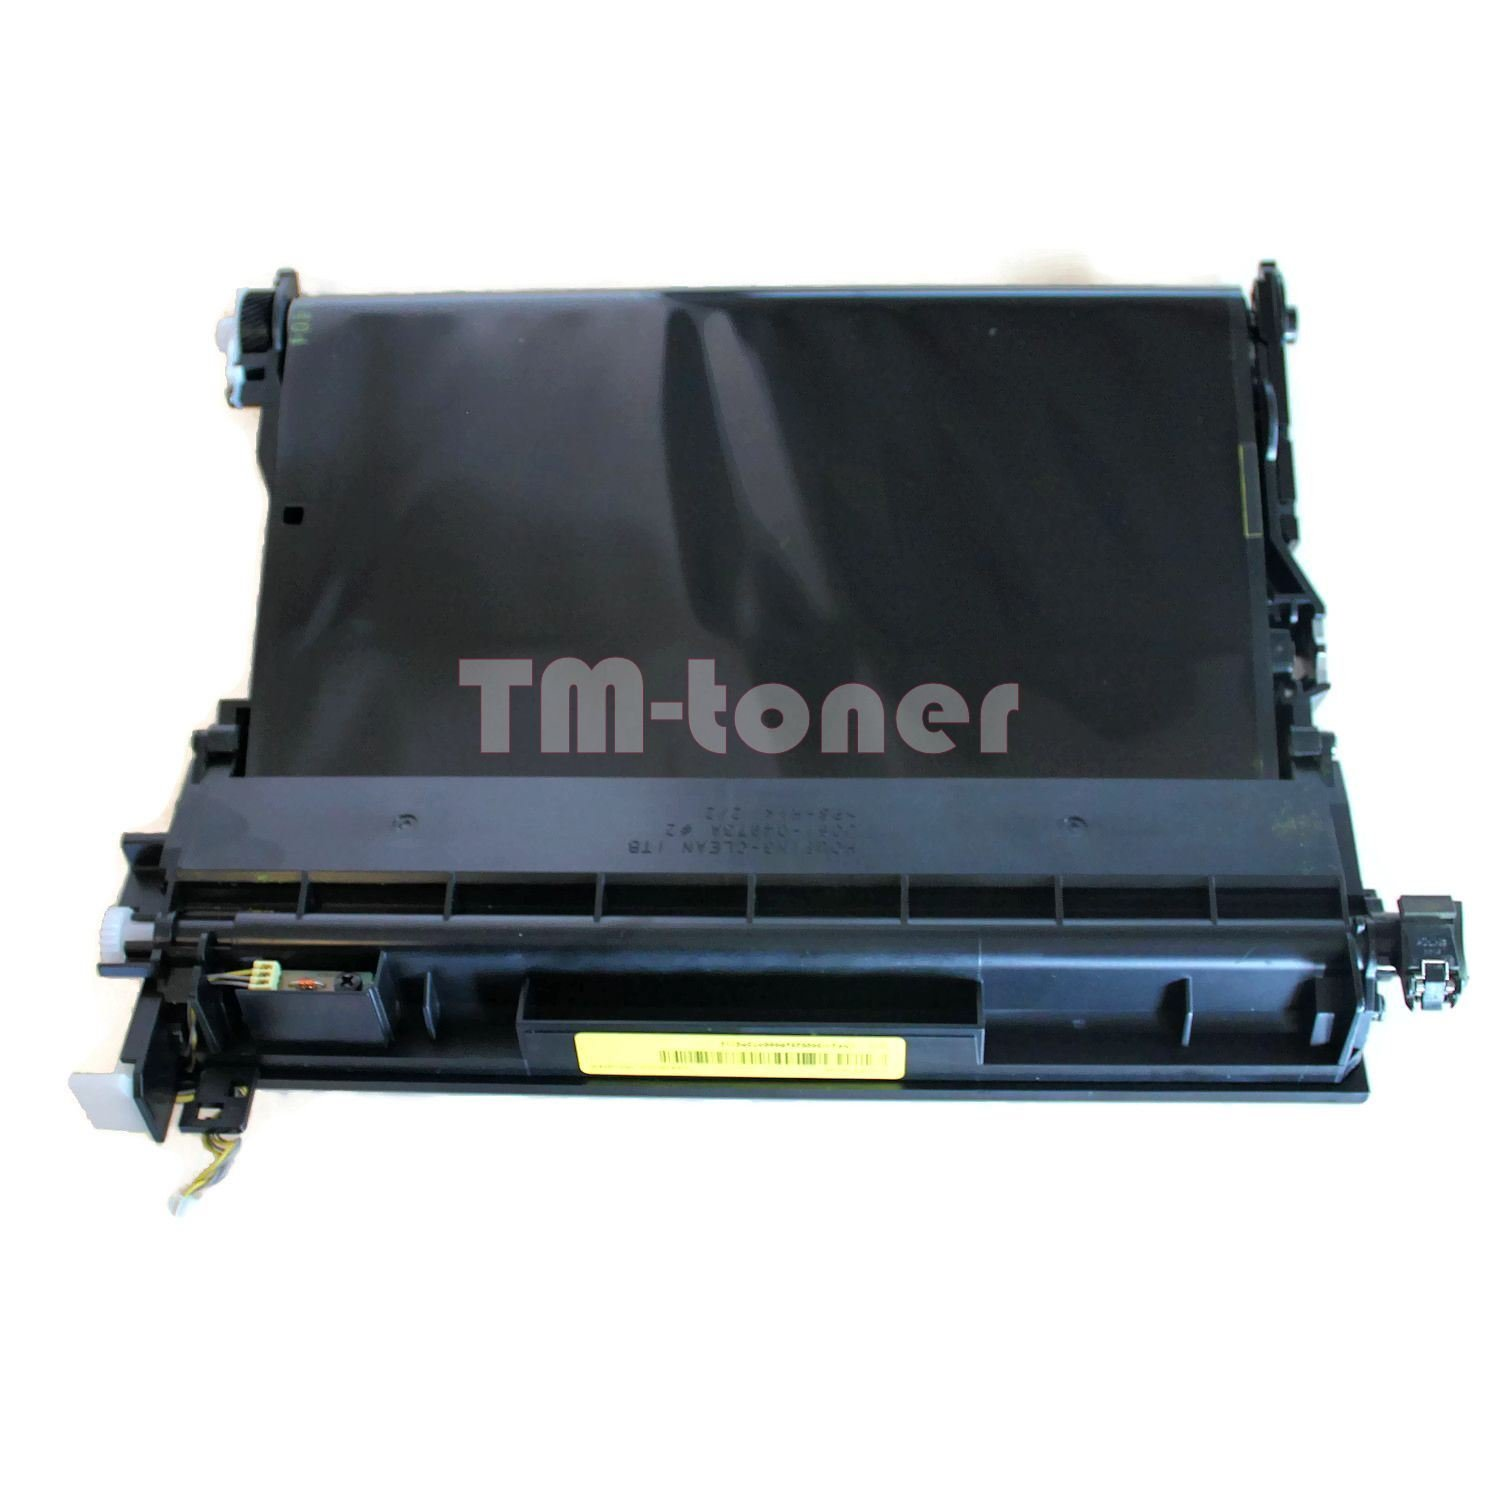 Remanufactured JC96-06292A Transfer Belt Unit for Samsung CLP365 CLP365W CLX3305 CLX3305FN CLX3305FW CLX3305W SLC410W SLC460FW SLC460W by TM-toner (Image #1)